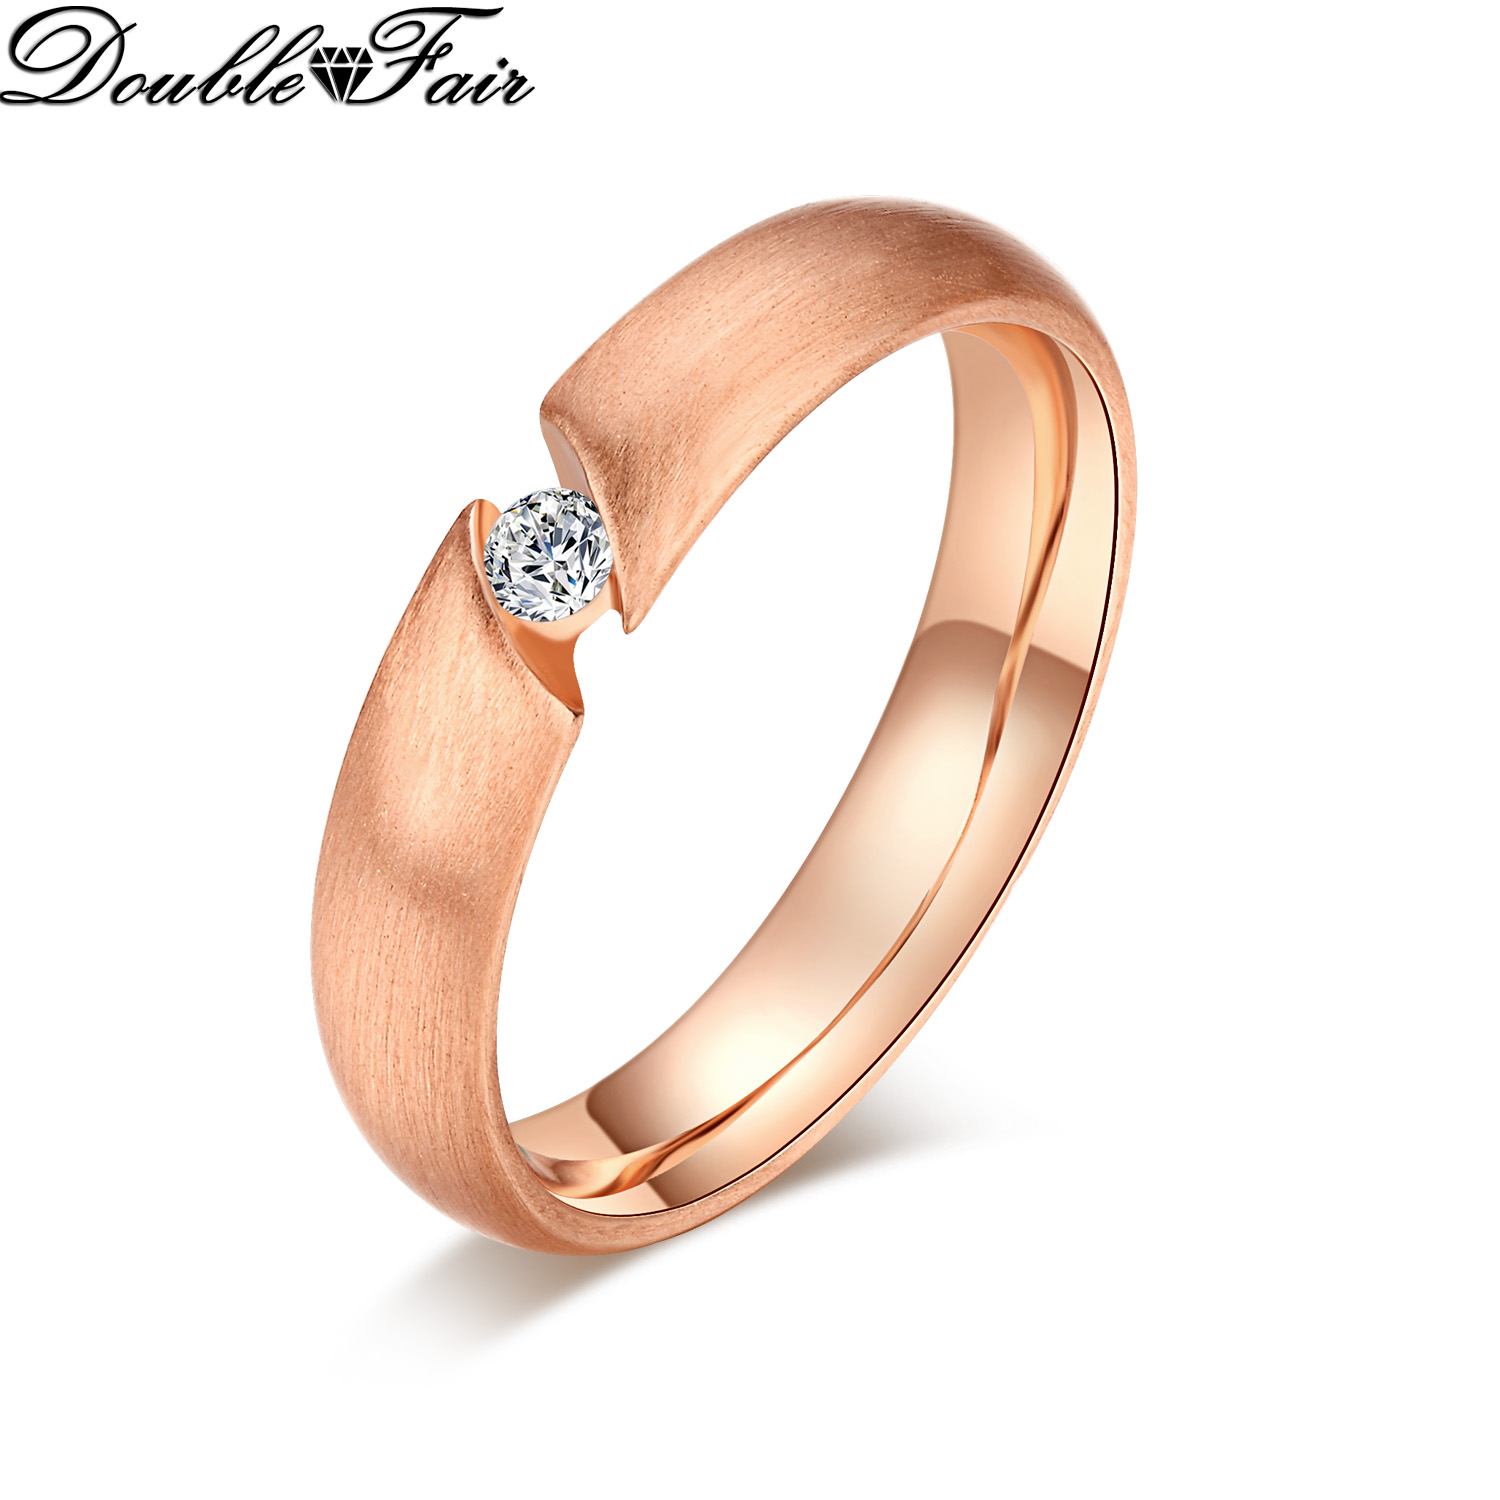 buy cz diamond wedding rings rose gold plated fashion crystal engagement ring. Black Bedroom Furniture Sets. Home Design Ideas